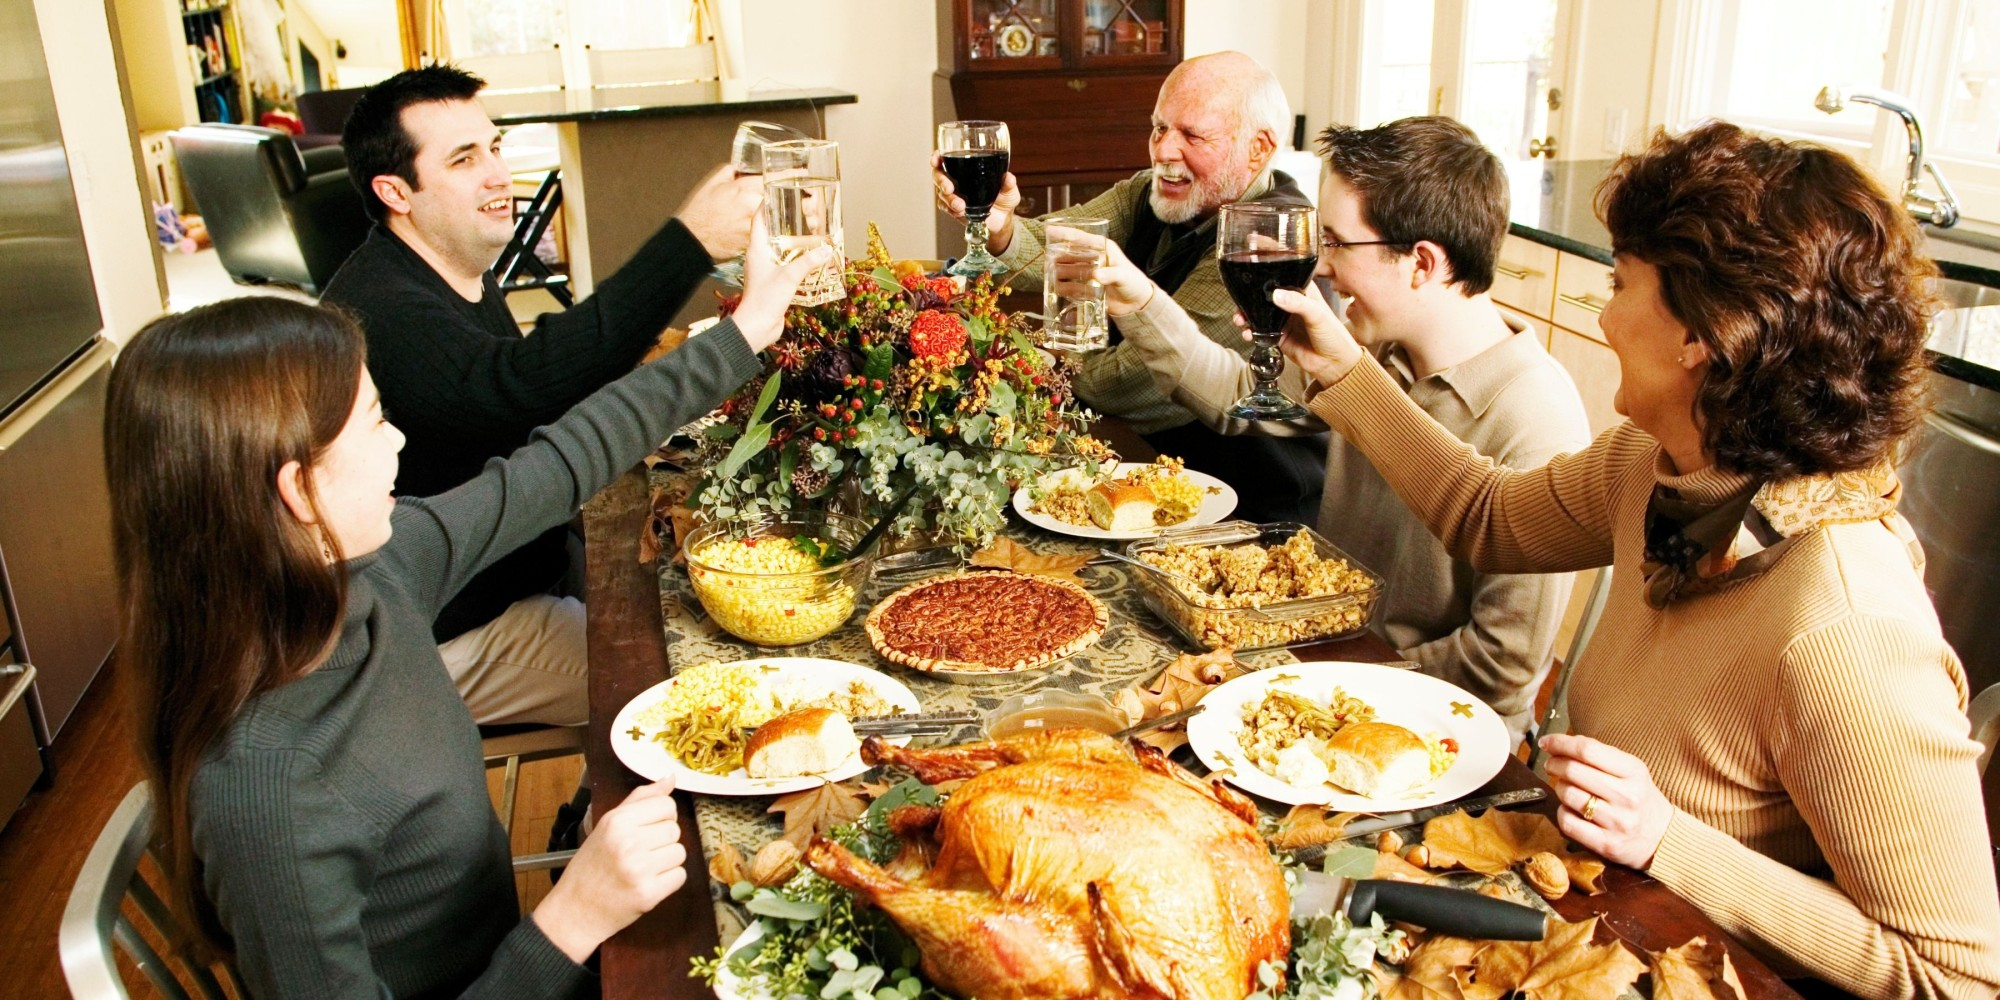 The cost of the average Thanksgiving dinner for 10 people is around $50